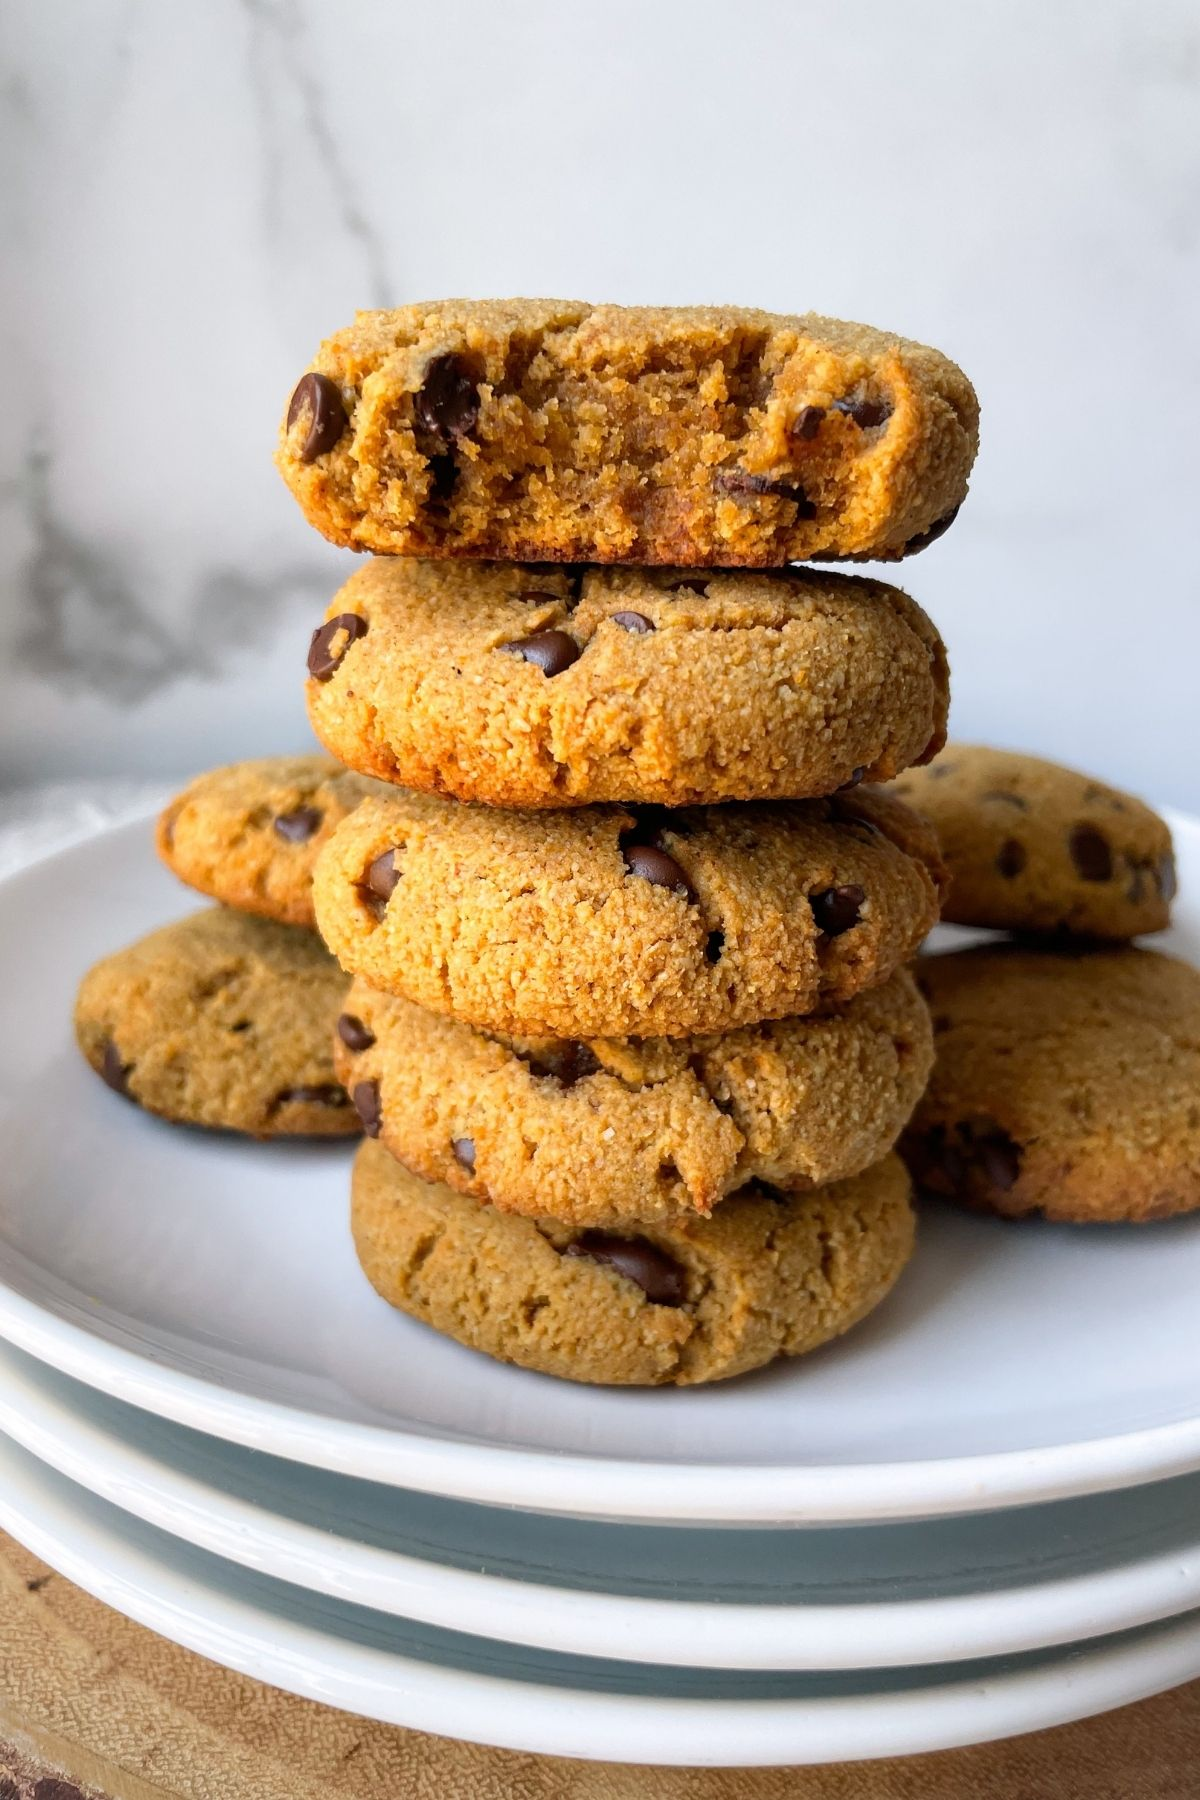 stacked cookies on white plates